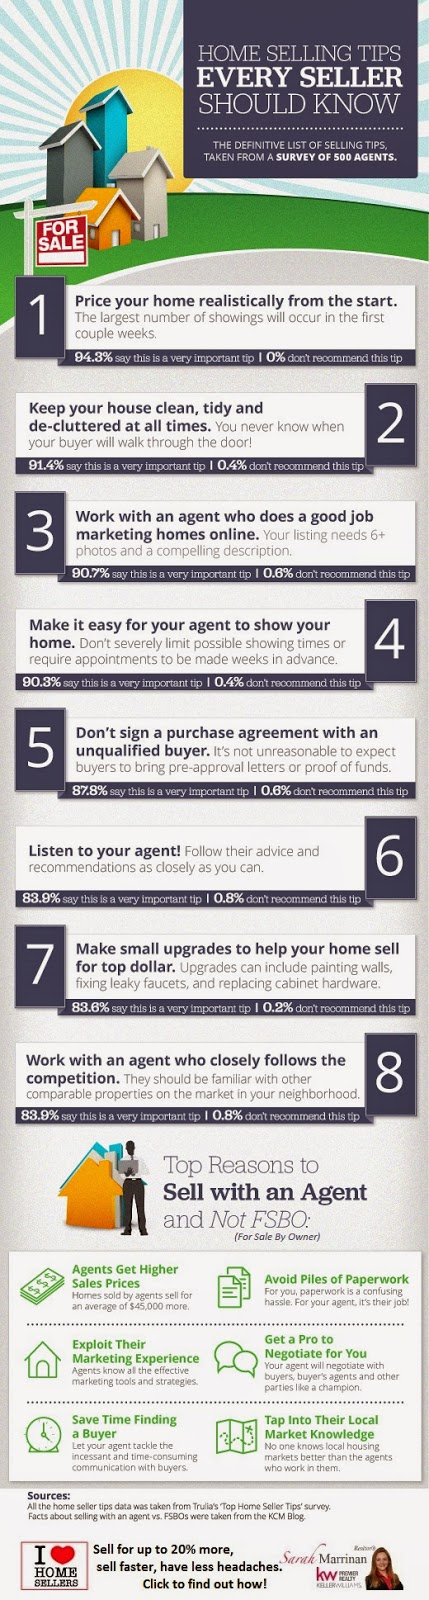 What home selling tips are the most important for Hugo home sellers to know?